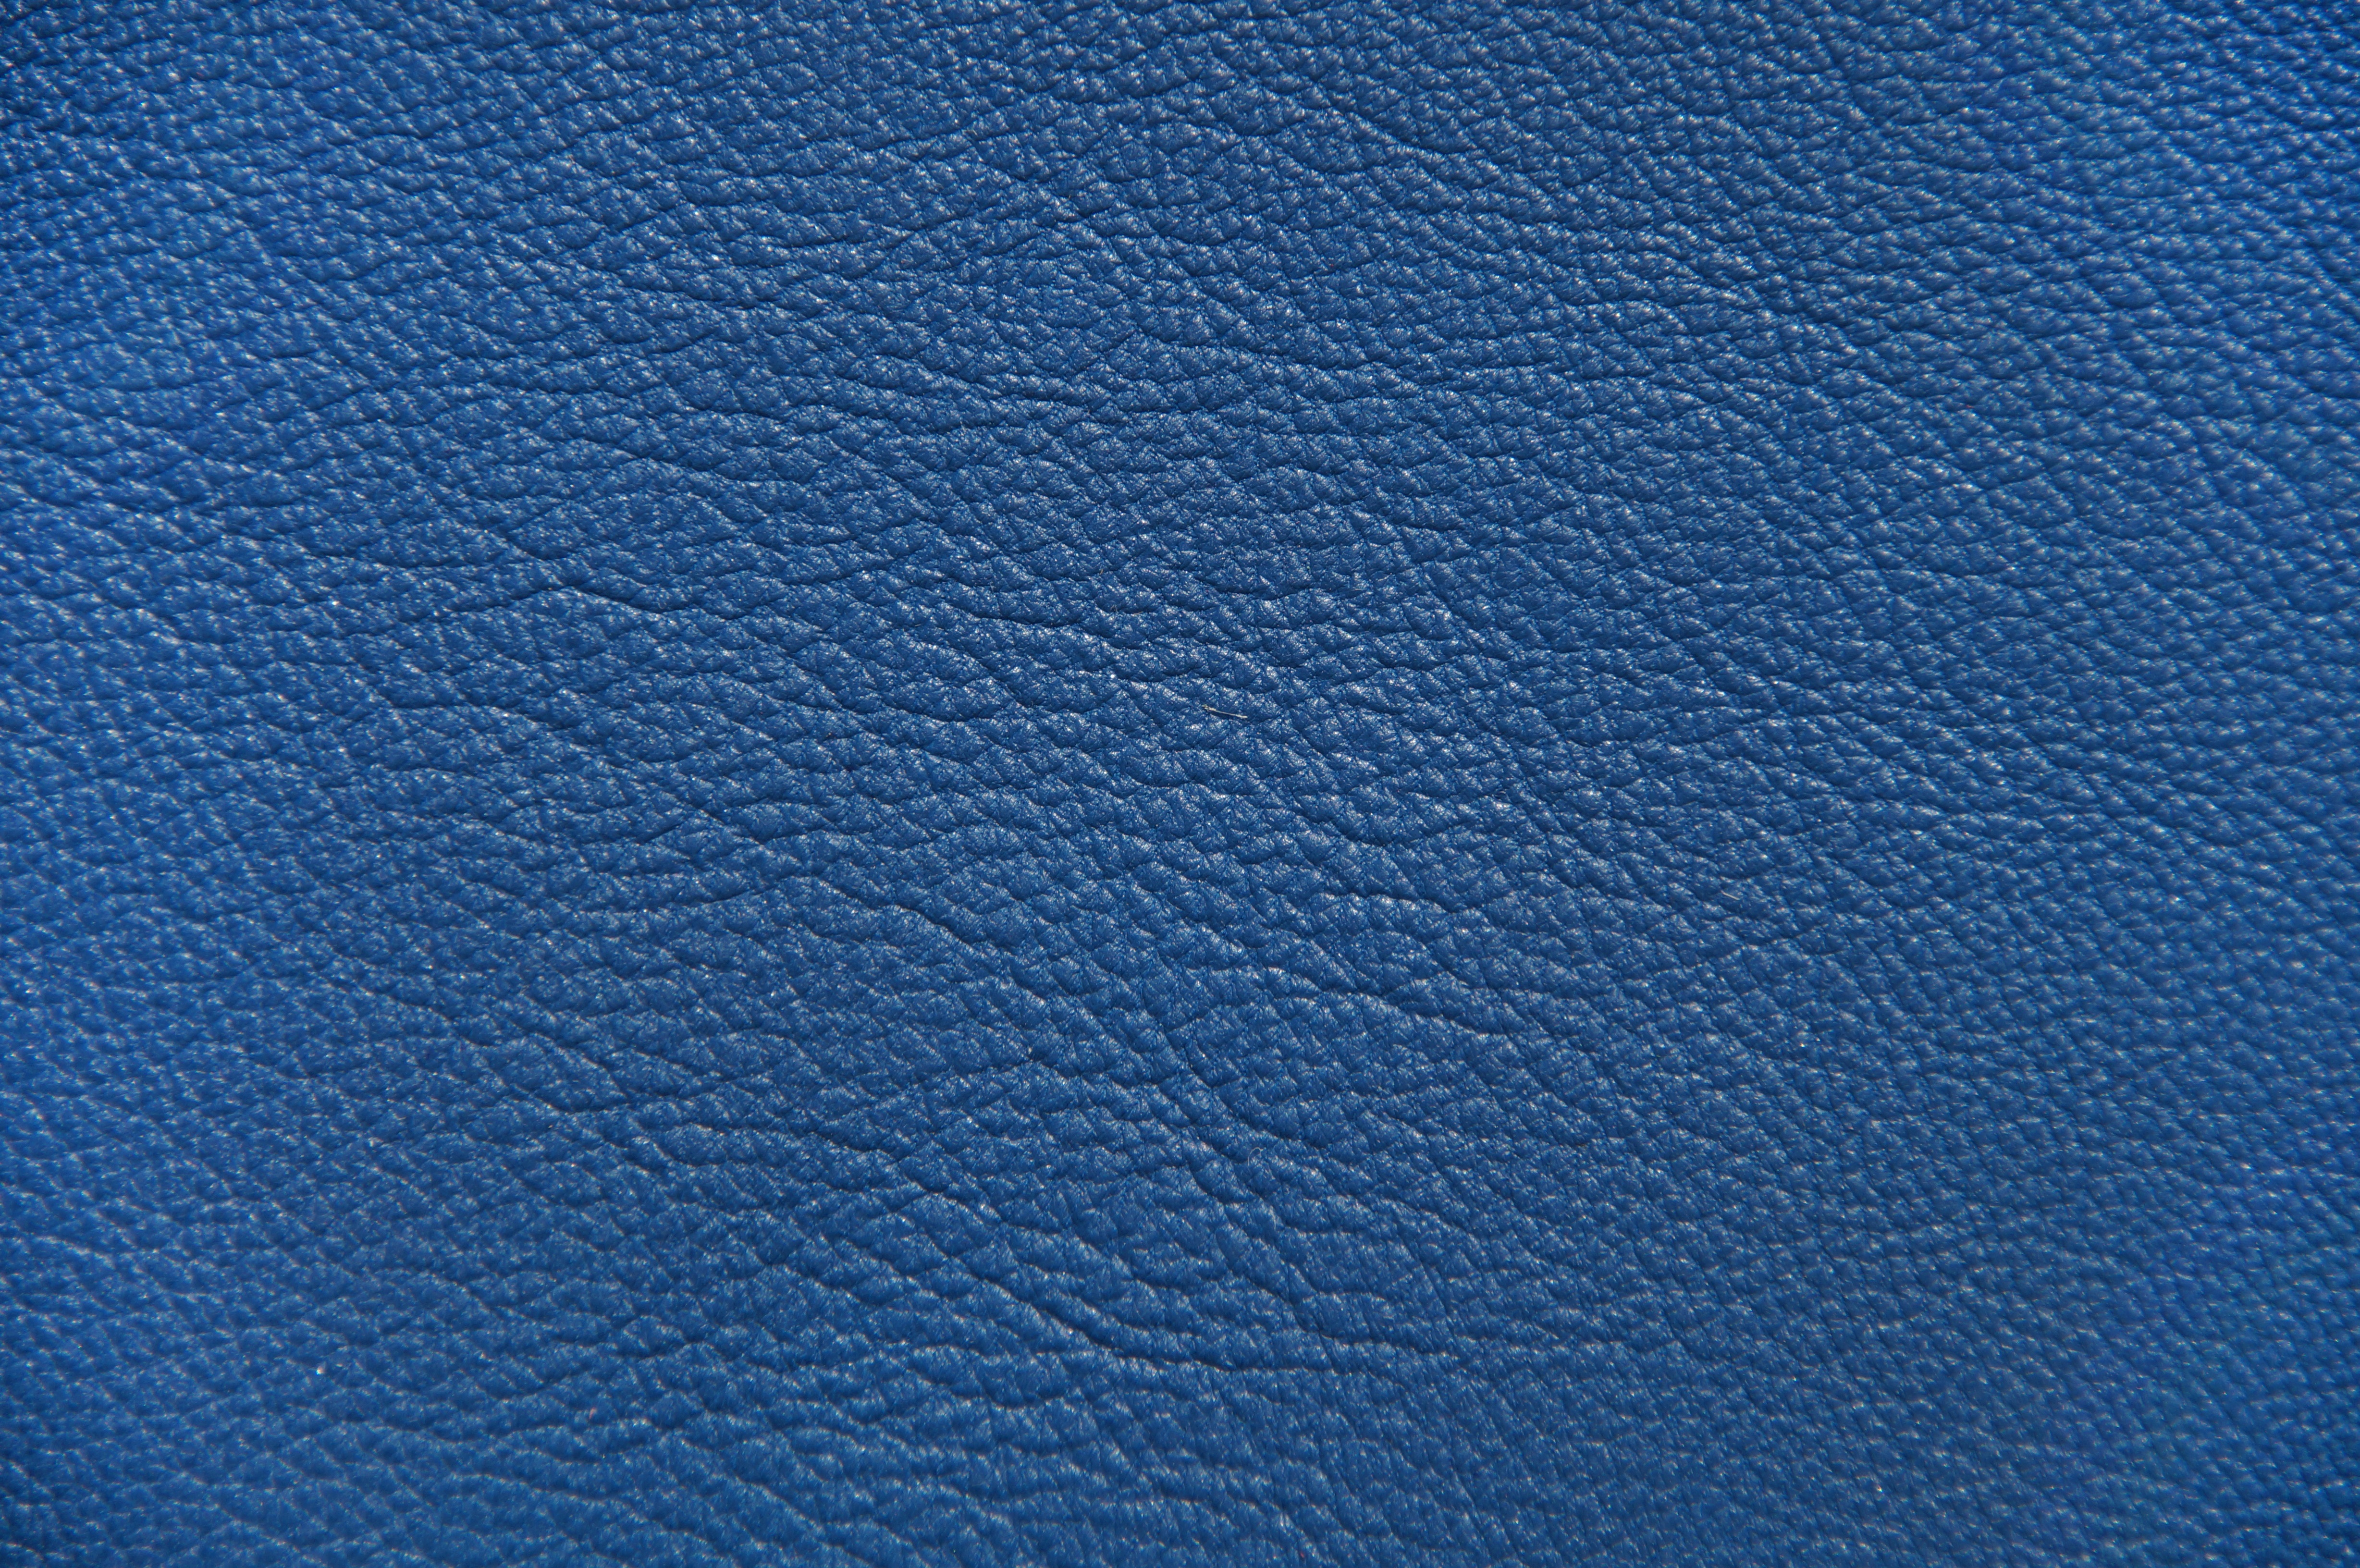 the first iphone blue leather 5k hd photography 4k wallpapers images 1628